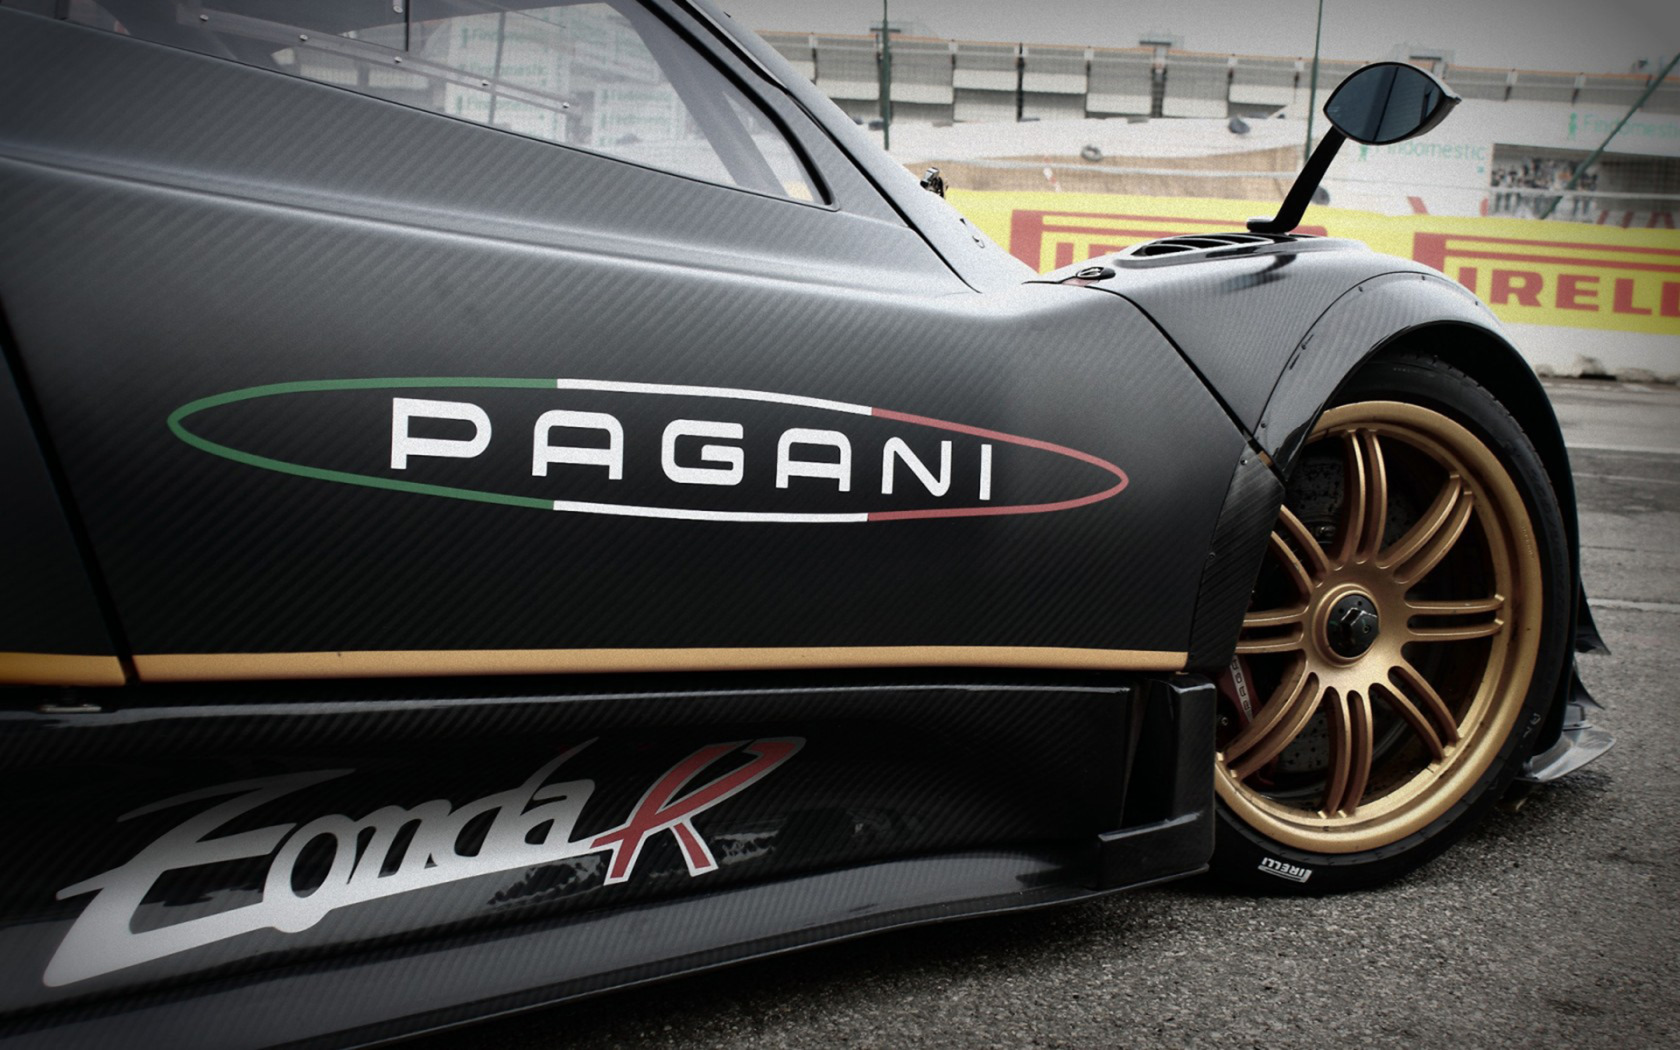 Pagani Zonda R widescreen wallpaper Wide WallpapersNET 1680x1050